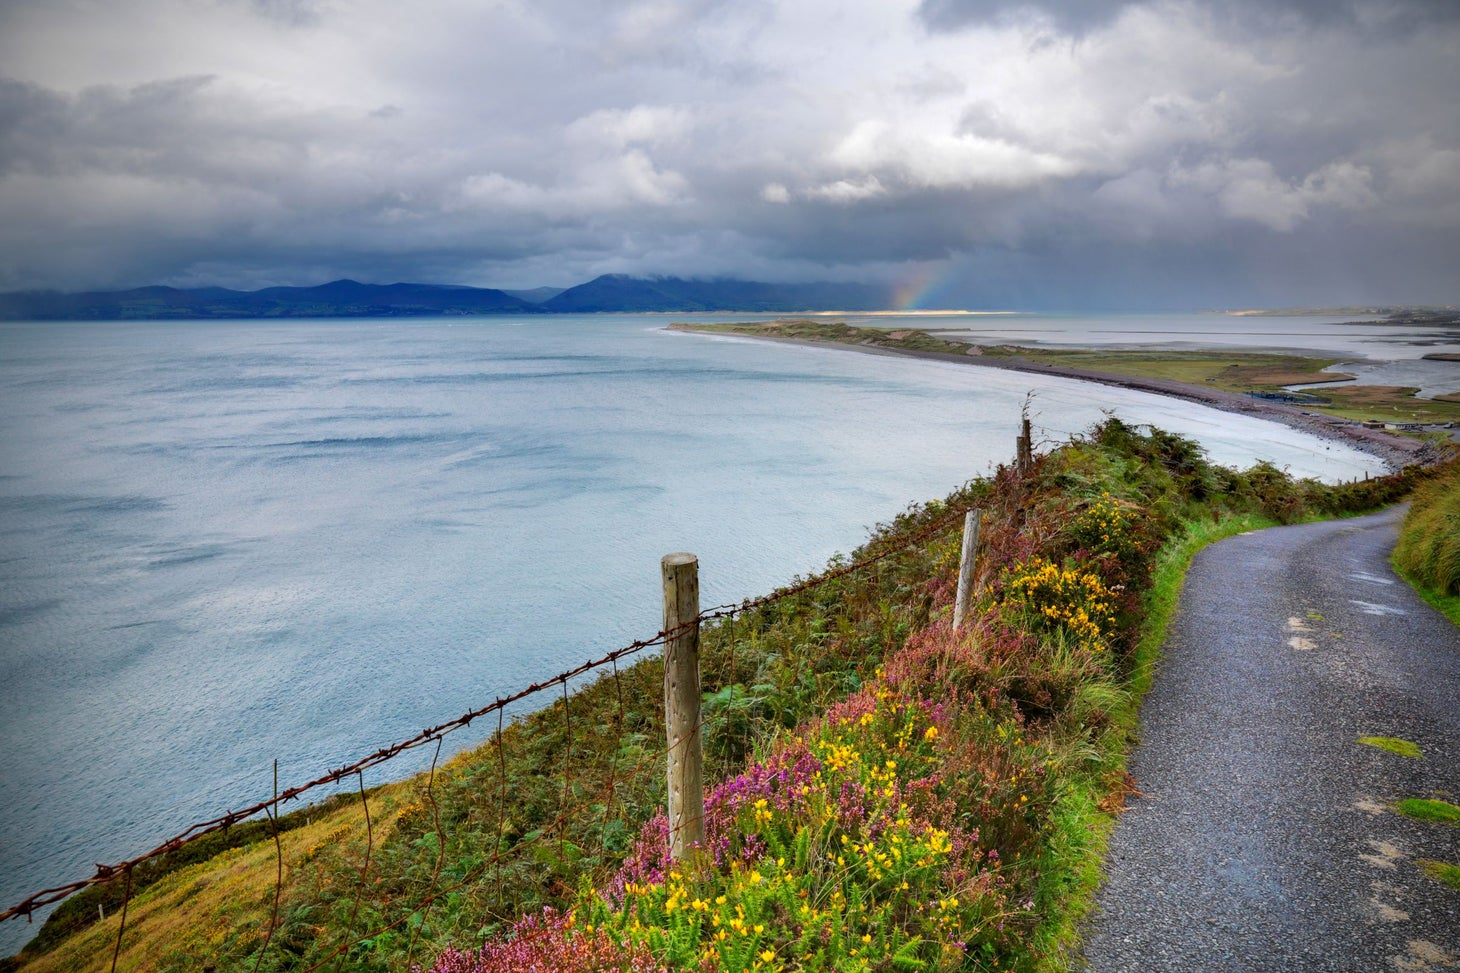 Cycle through stunning scenery on The Ring of Kerry.